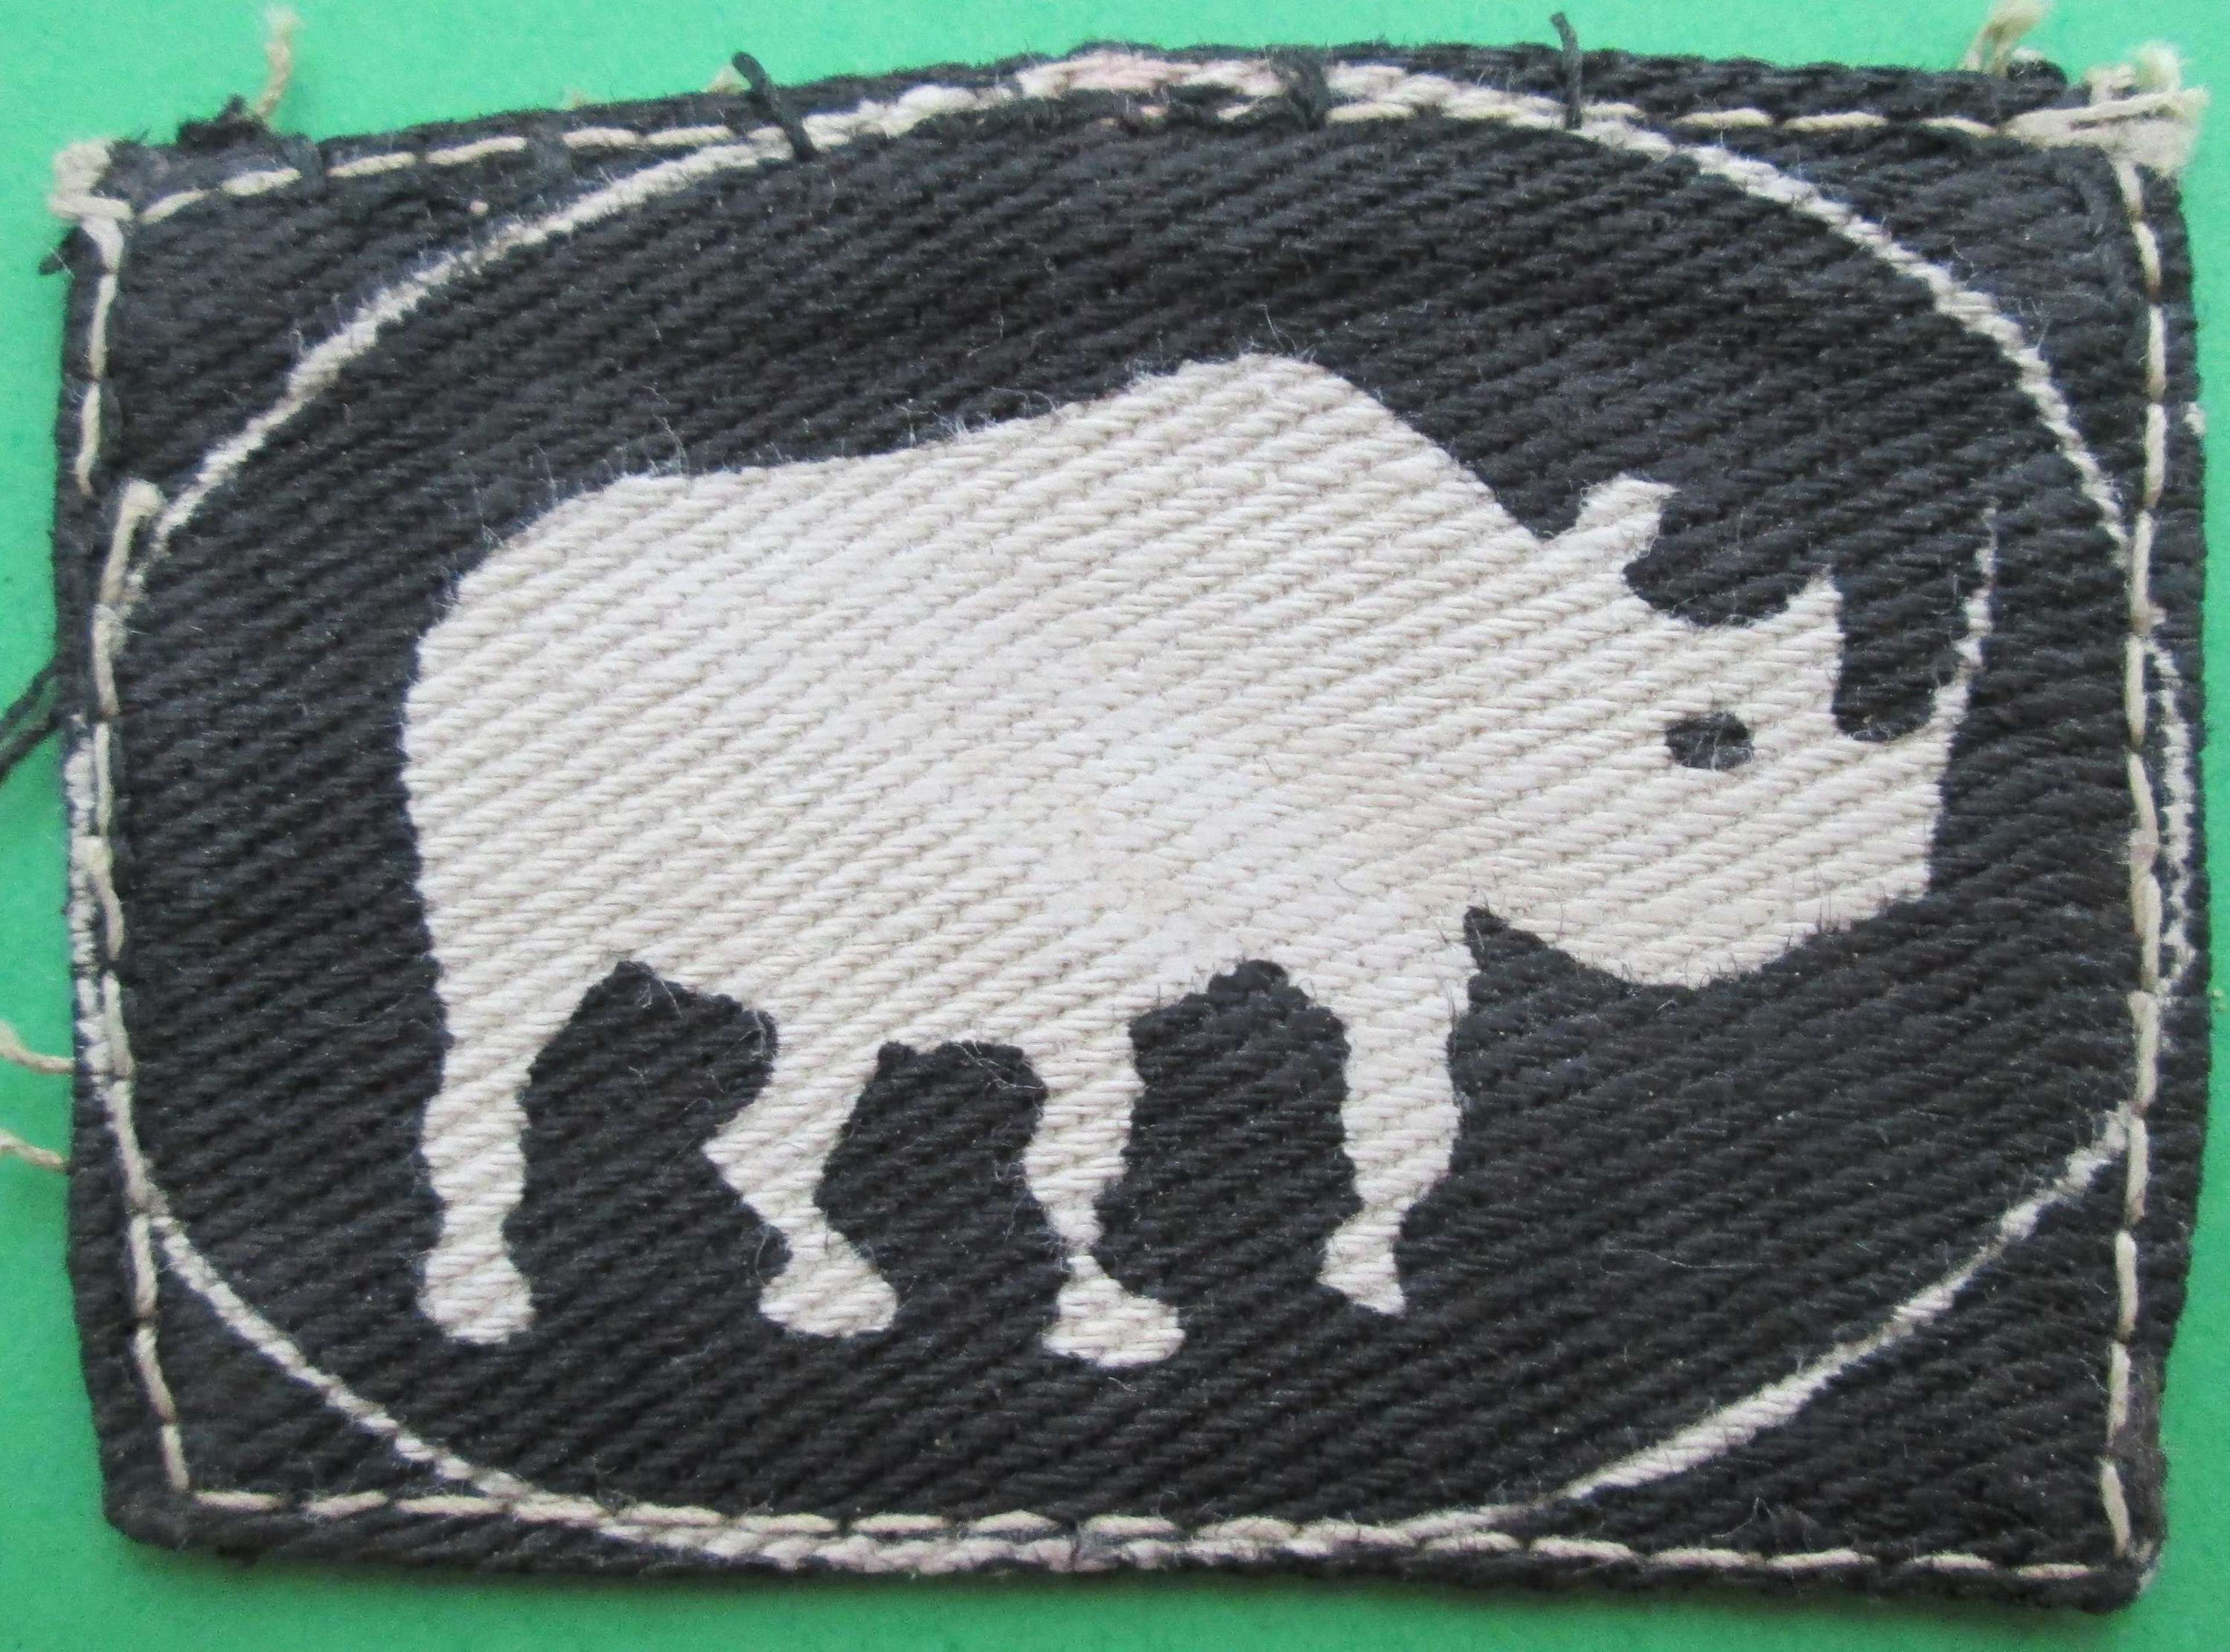 A 10TH ARMOURED DIVISION FORMATION SIGN